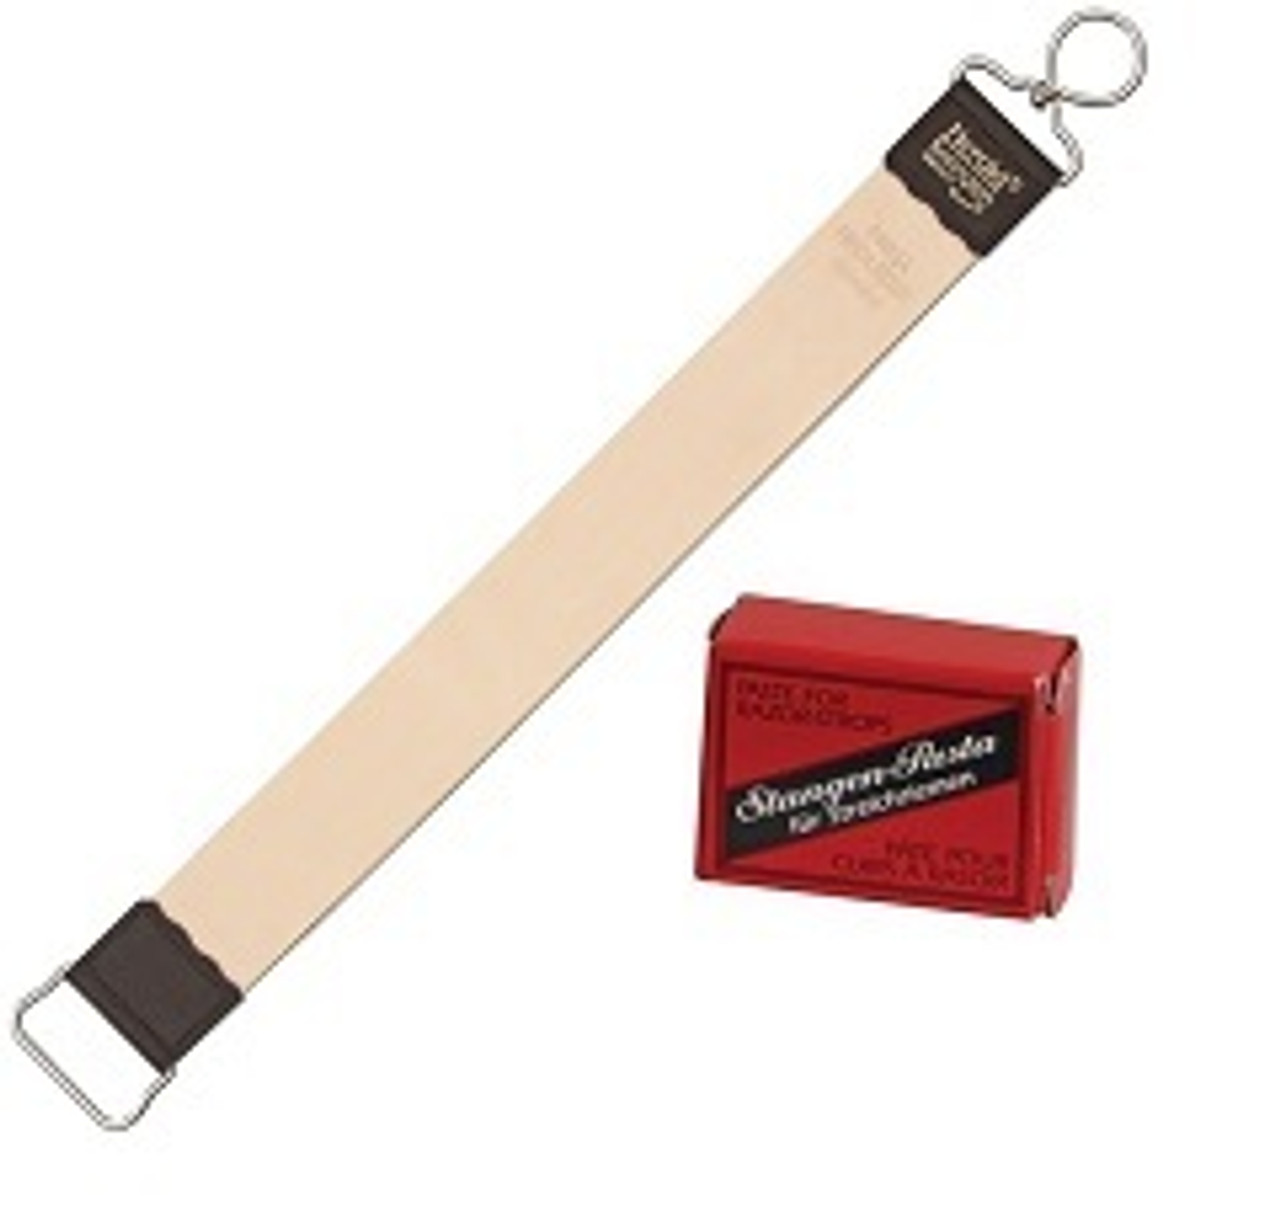 Strops & Sharpening Tools